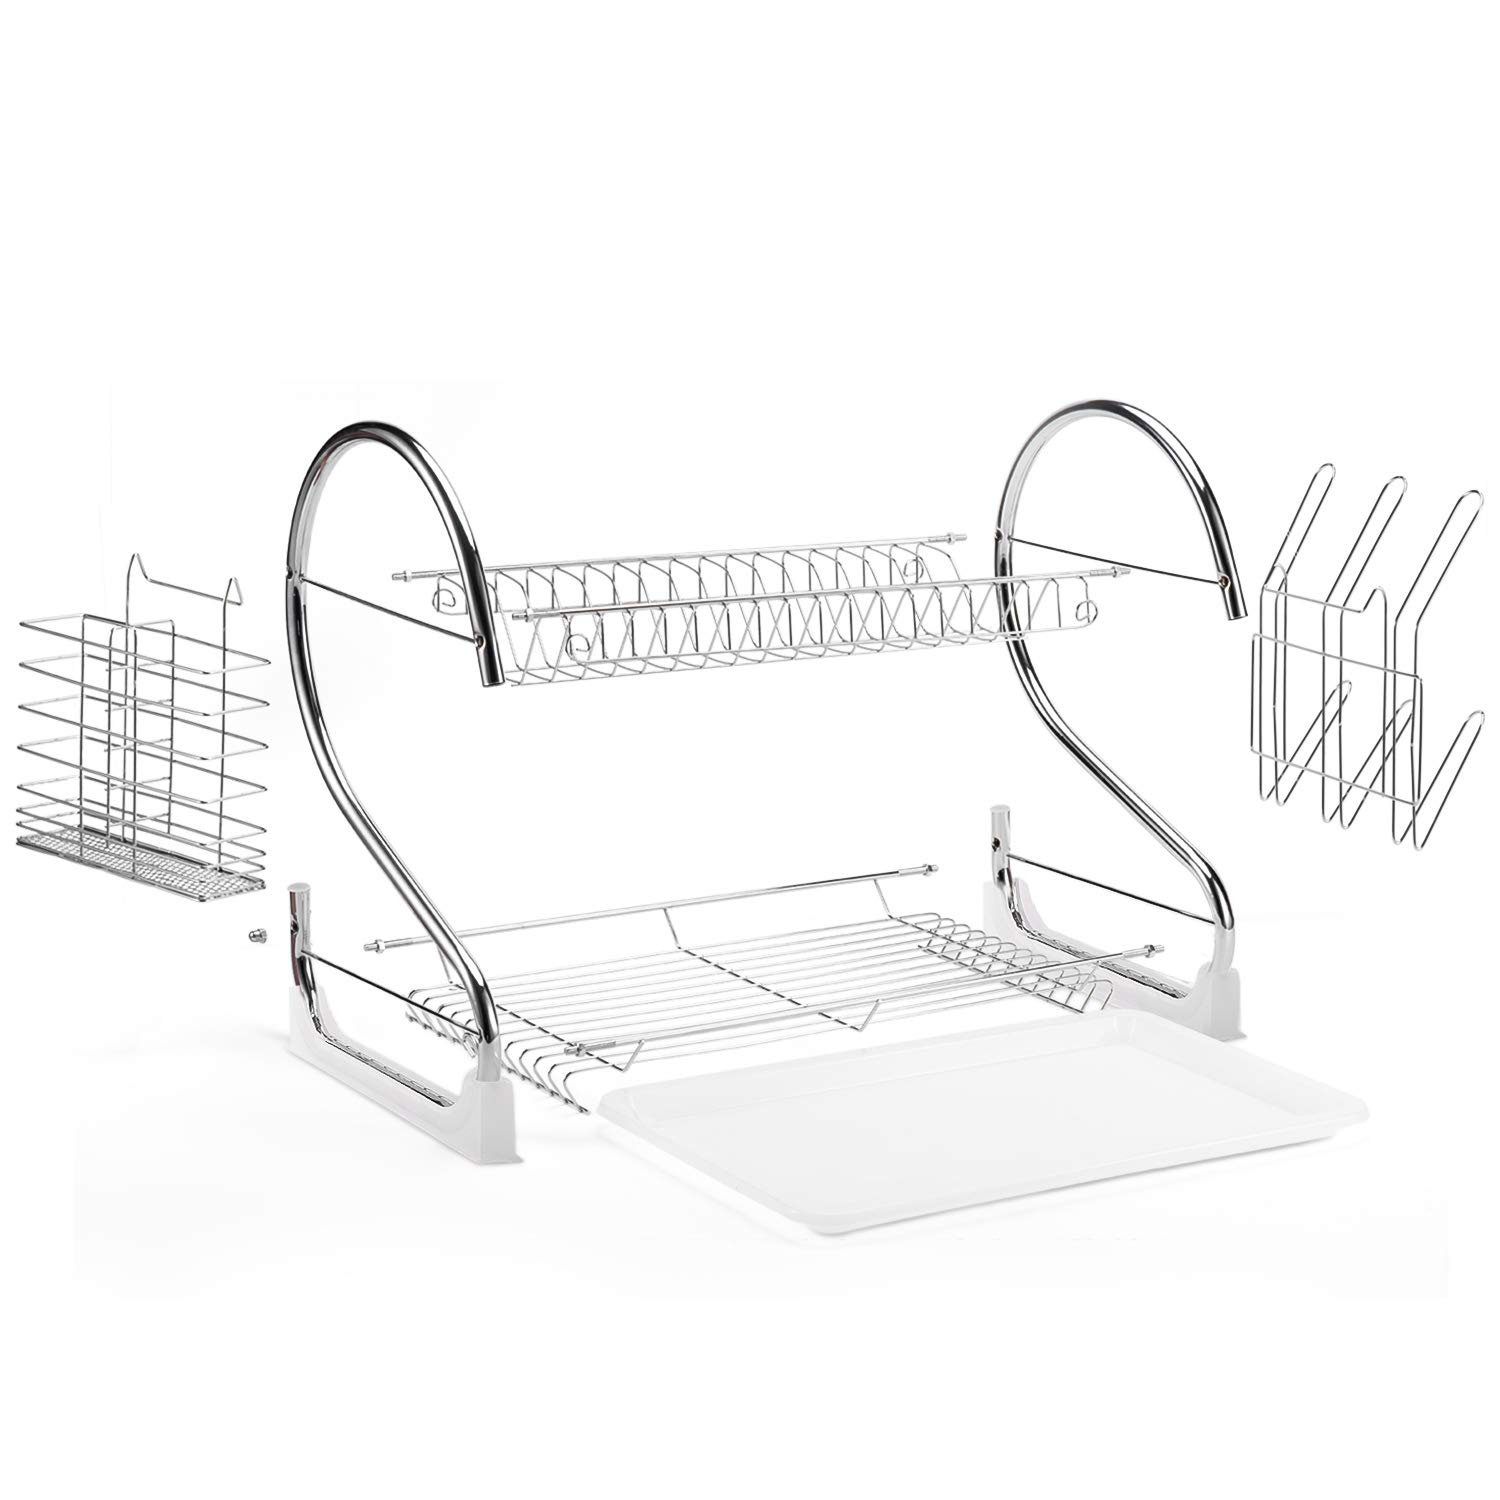 Glotoch 2 Tier Dish Drying Rack,2020 Upgrades Double Rust-Proof Treatment Dish Rack with More Stable Footpad, Utensil Holder, Cup Holder and Dish Drainer for Kitchen Counter Top Silver 16.5 x 9.5 x 15